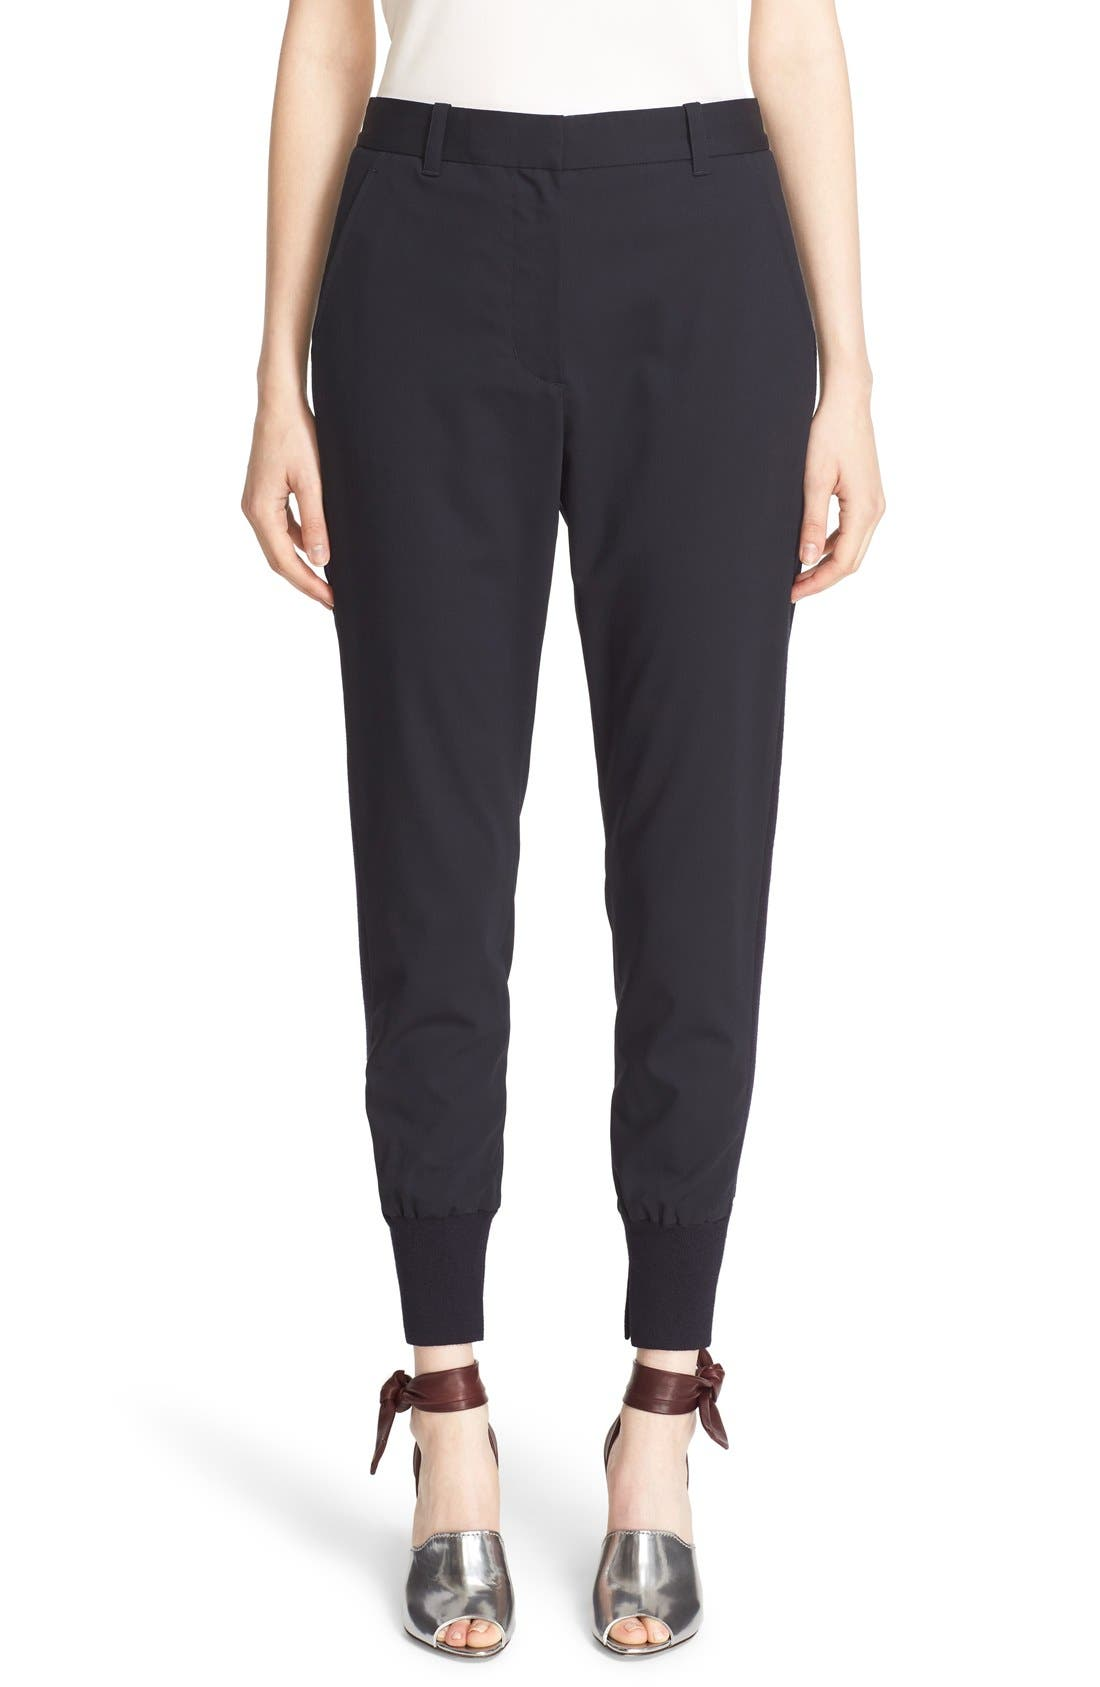 3.1 PHILLIP LIM Rib Stripe Jogger Pants